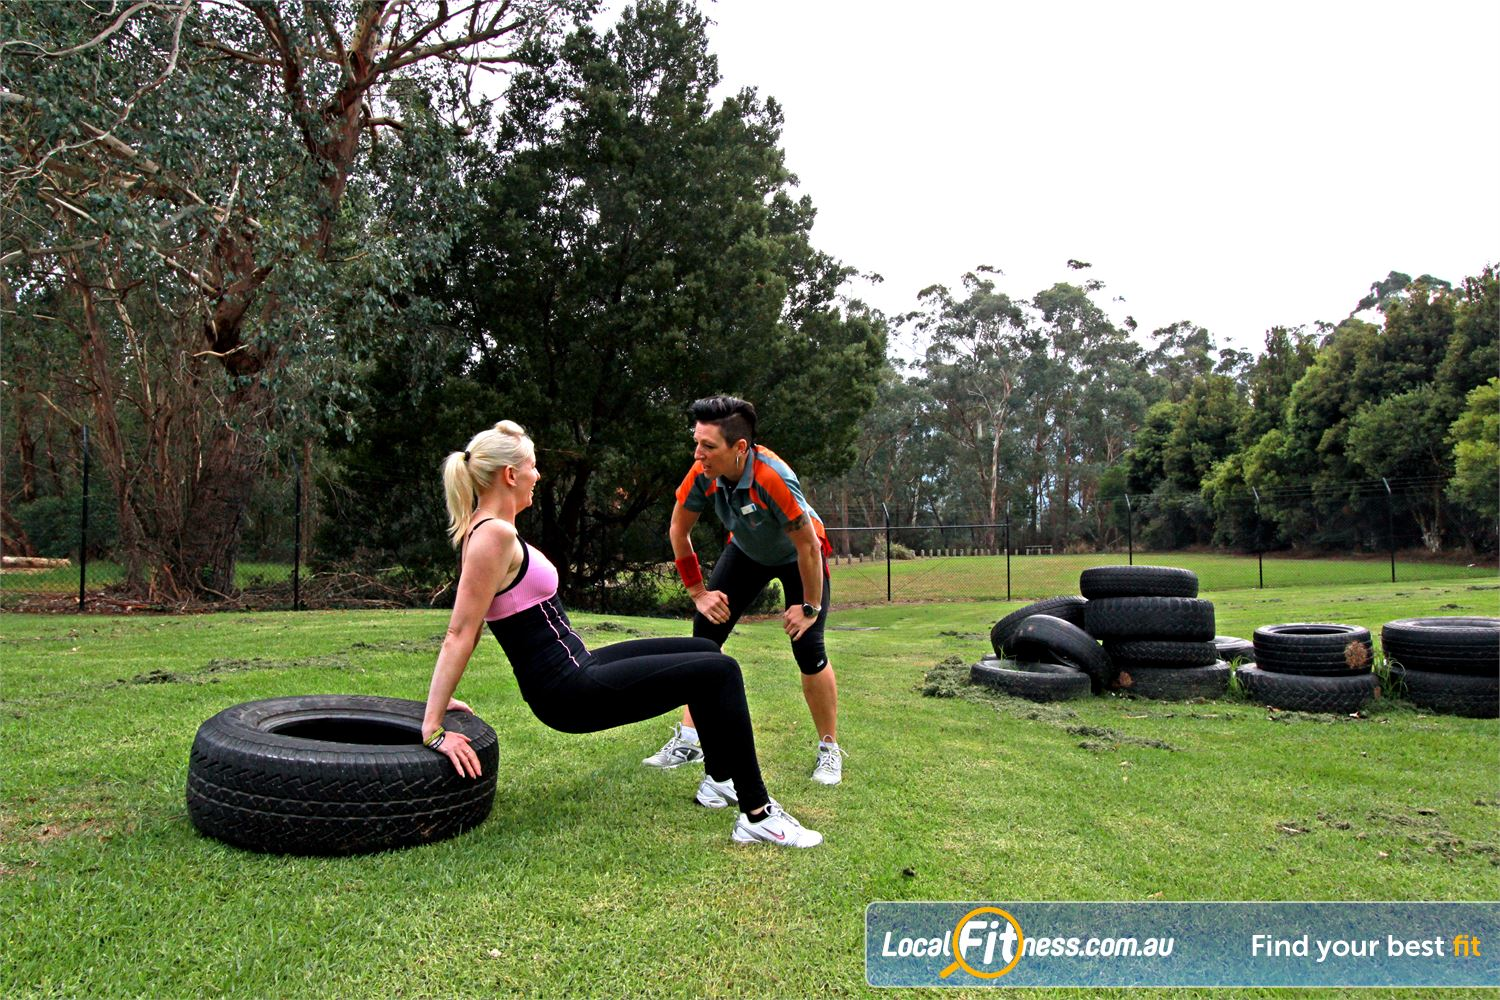 Yarra Recreation Centre Yarra Junction We are conveniently situated on the Yarra Junction Reserve.